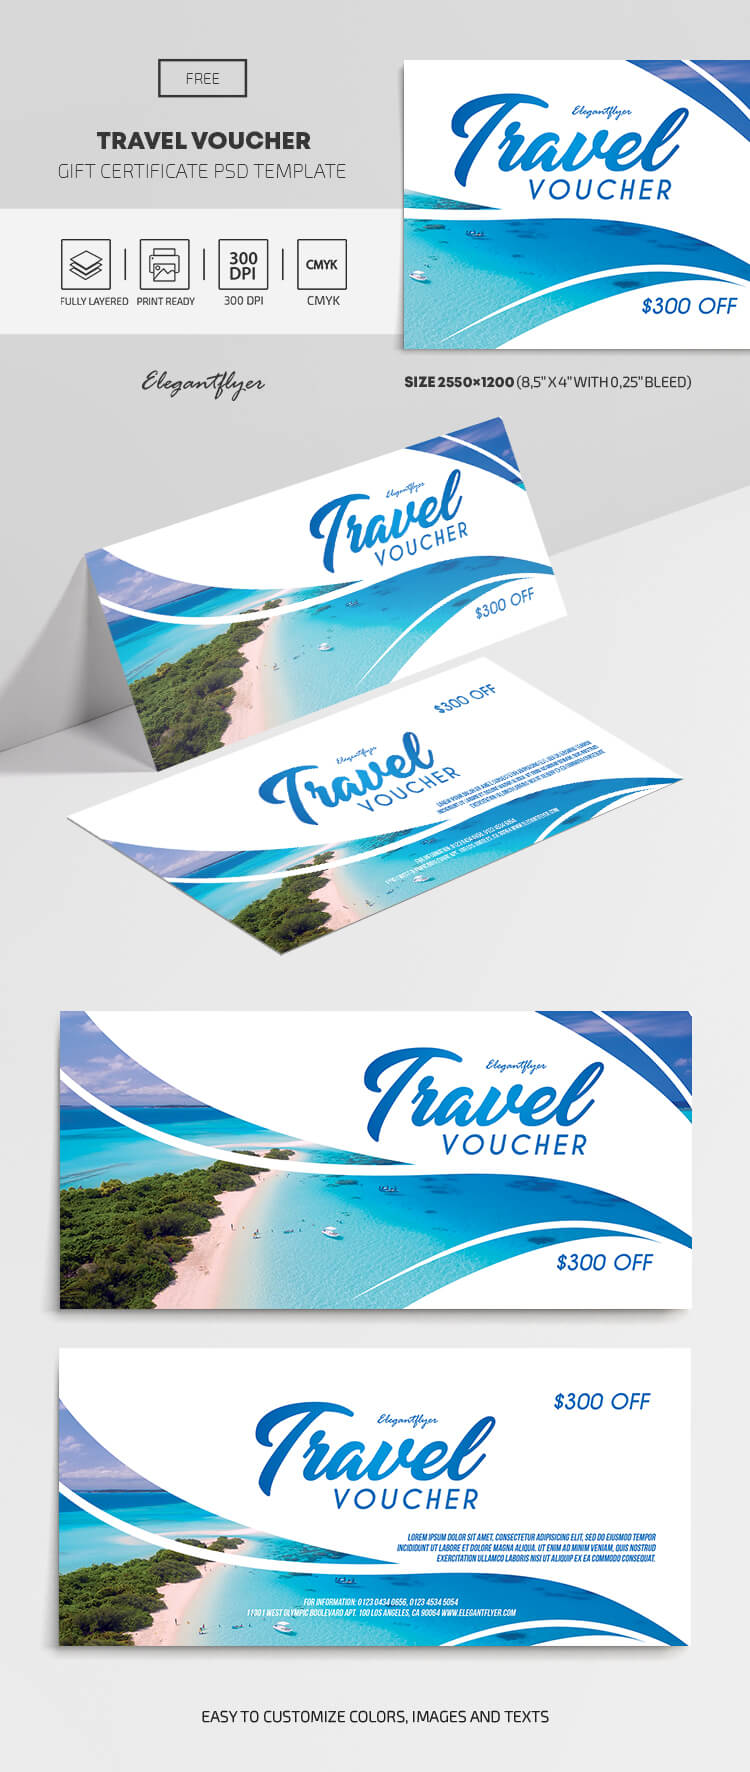 Travel Voucher – Free Gift Certificate Template – with Free Travel Gift Certificate Template